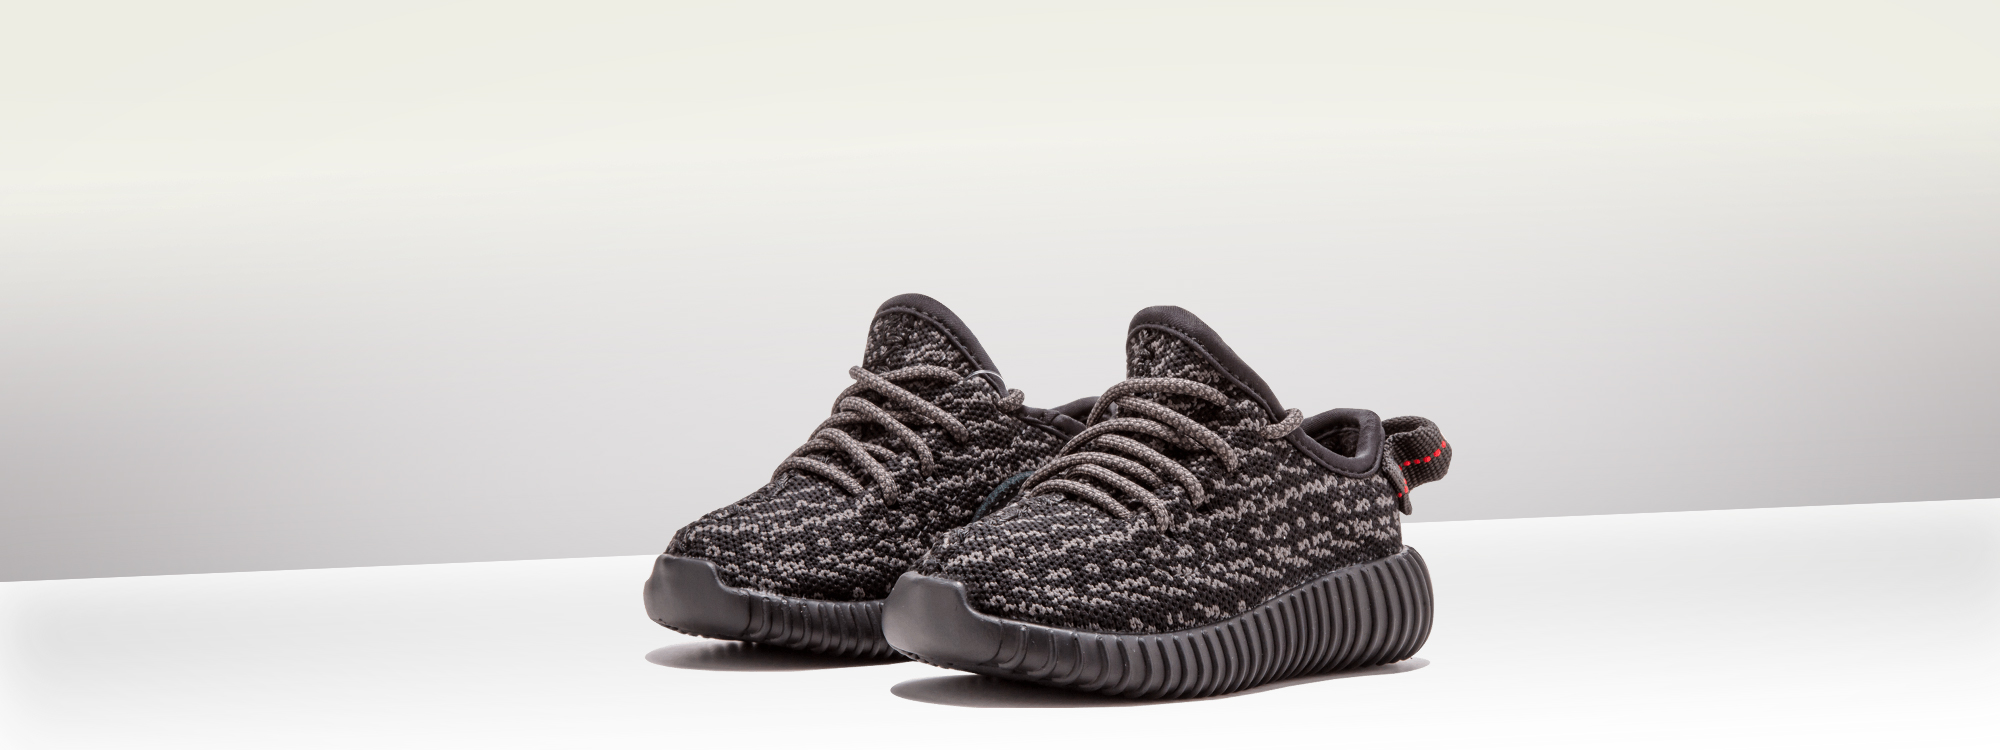 Perfect Adidas Yeezy Boost 350 INFANT Pirate Black Free Shipping via DHL cheap